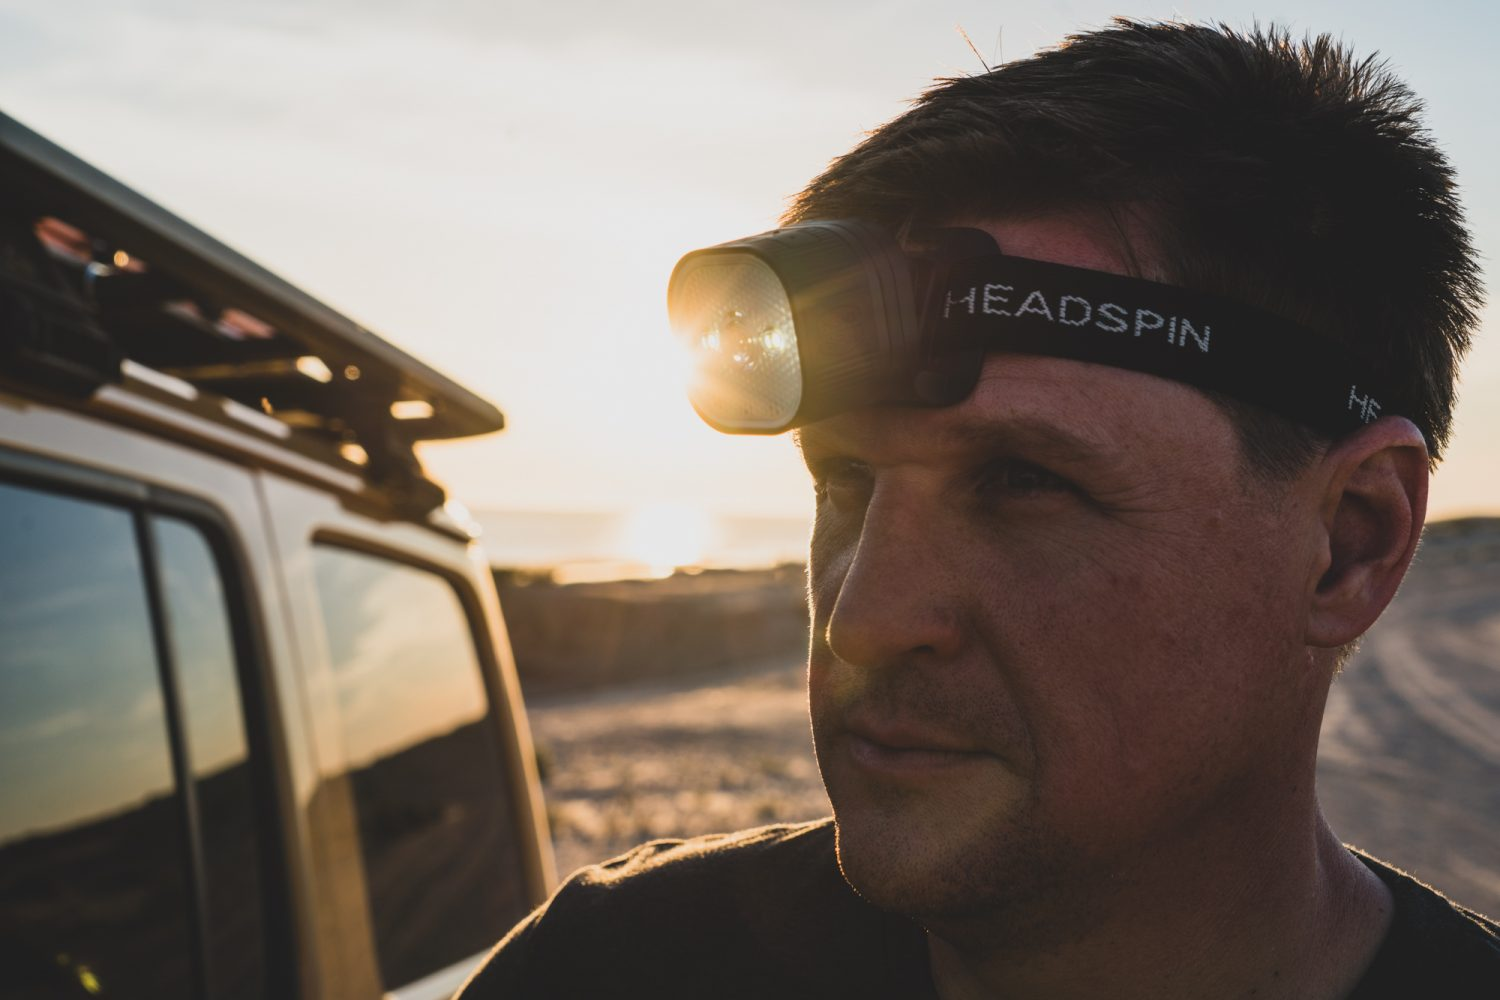 One Headlamp to Rule Them All?